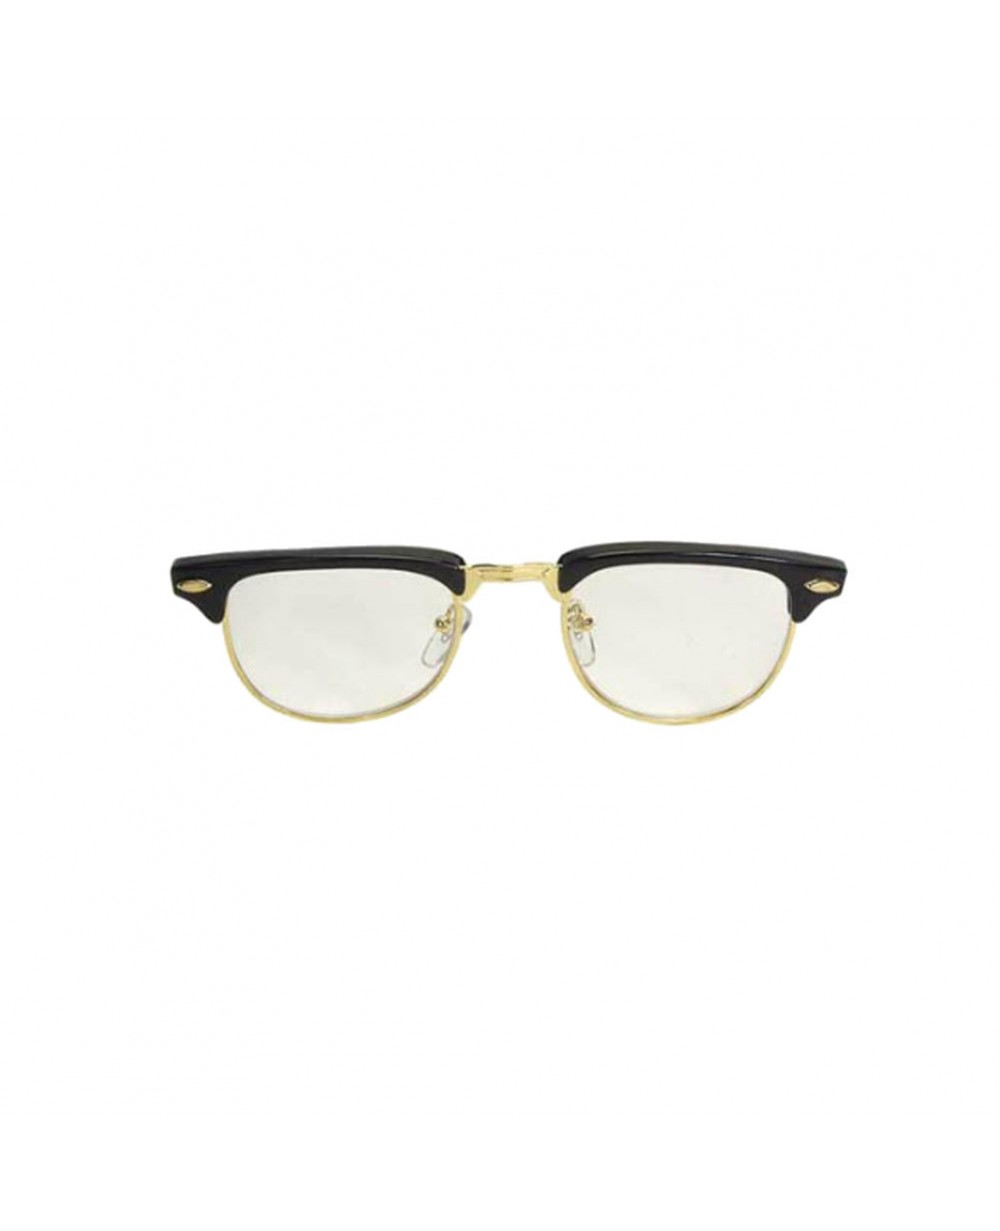 nerdy soho glasses with black and gold frames